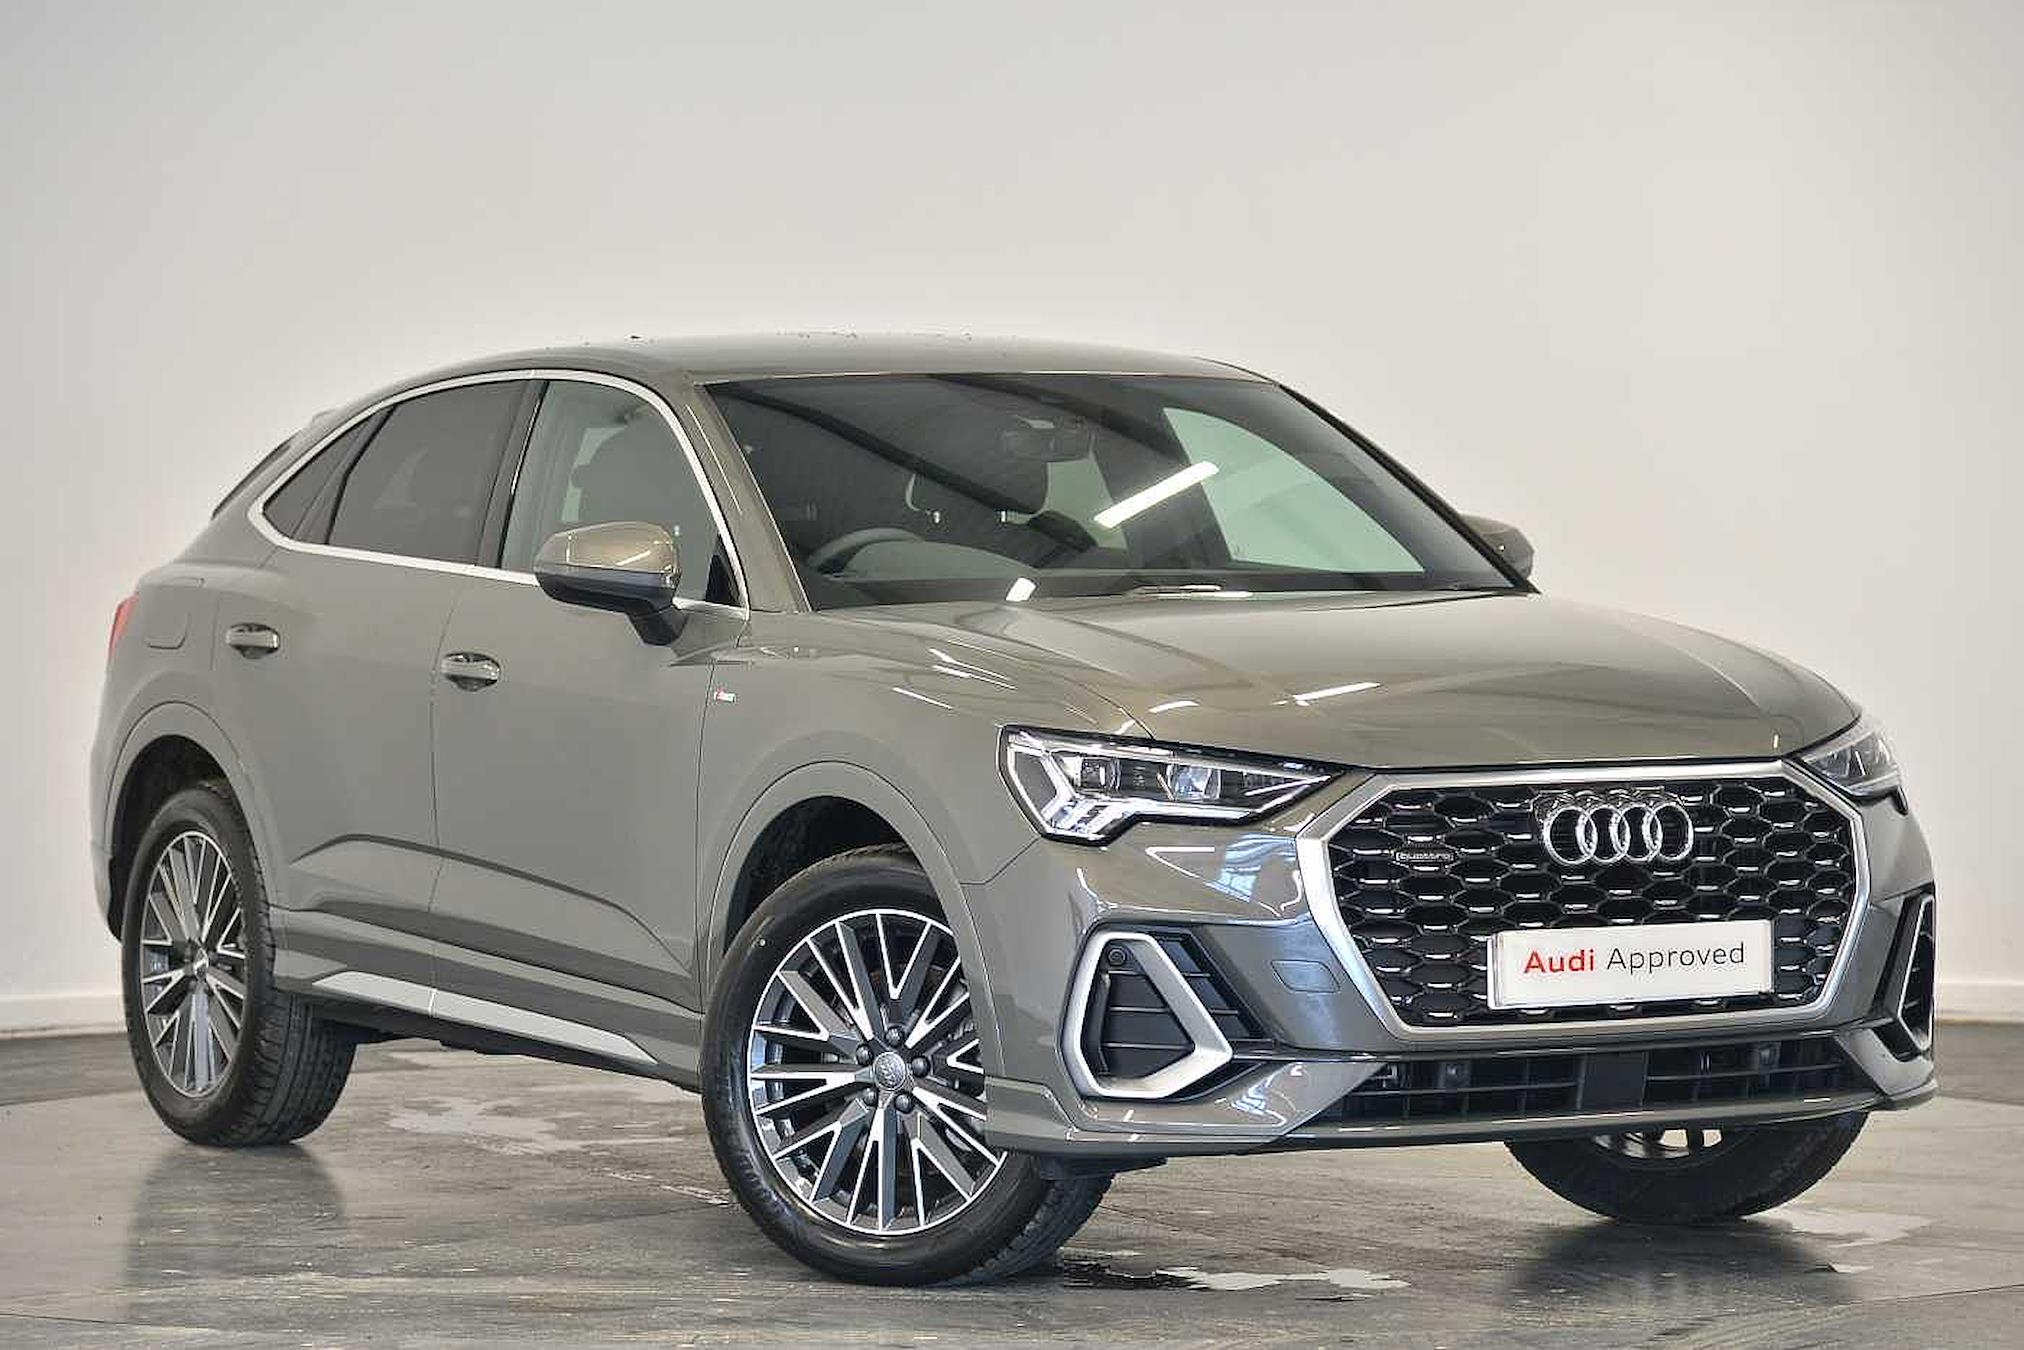 Nearly New Q3 Audi 45 Tfsi Quattro S Line 5dr S Tronic 2020 Lookers